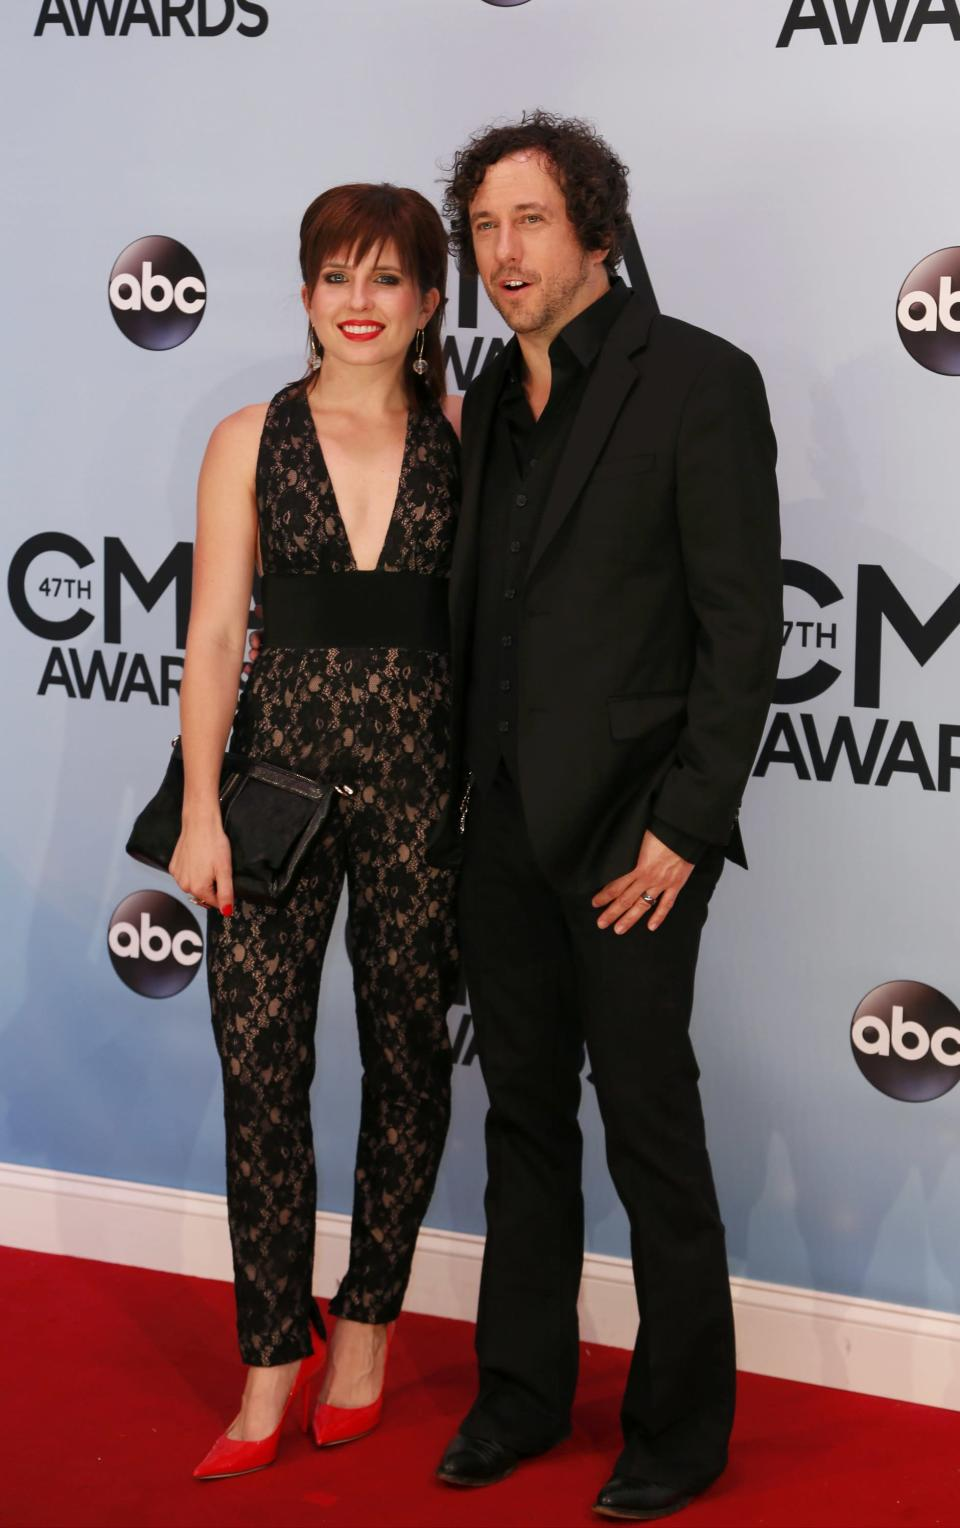 Singer Will Hoge and wife Julia arrive at the 47th Country Music Association Awards in Nashville, Tennessee November 6, 2013. REUTERS/Eric Henderson (UNITED STATES - Tags: ENTERTAINMENT)